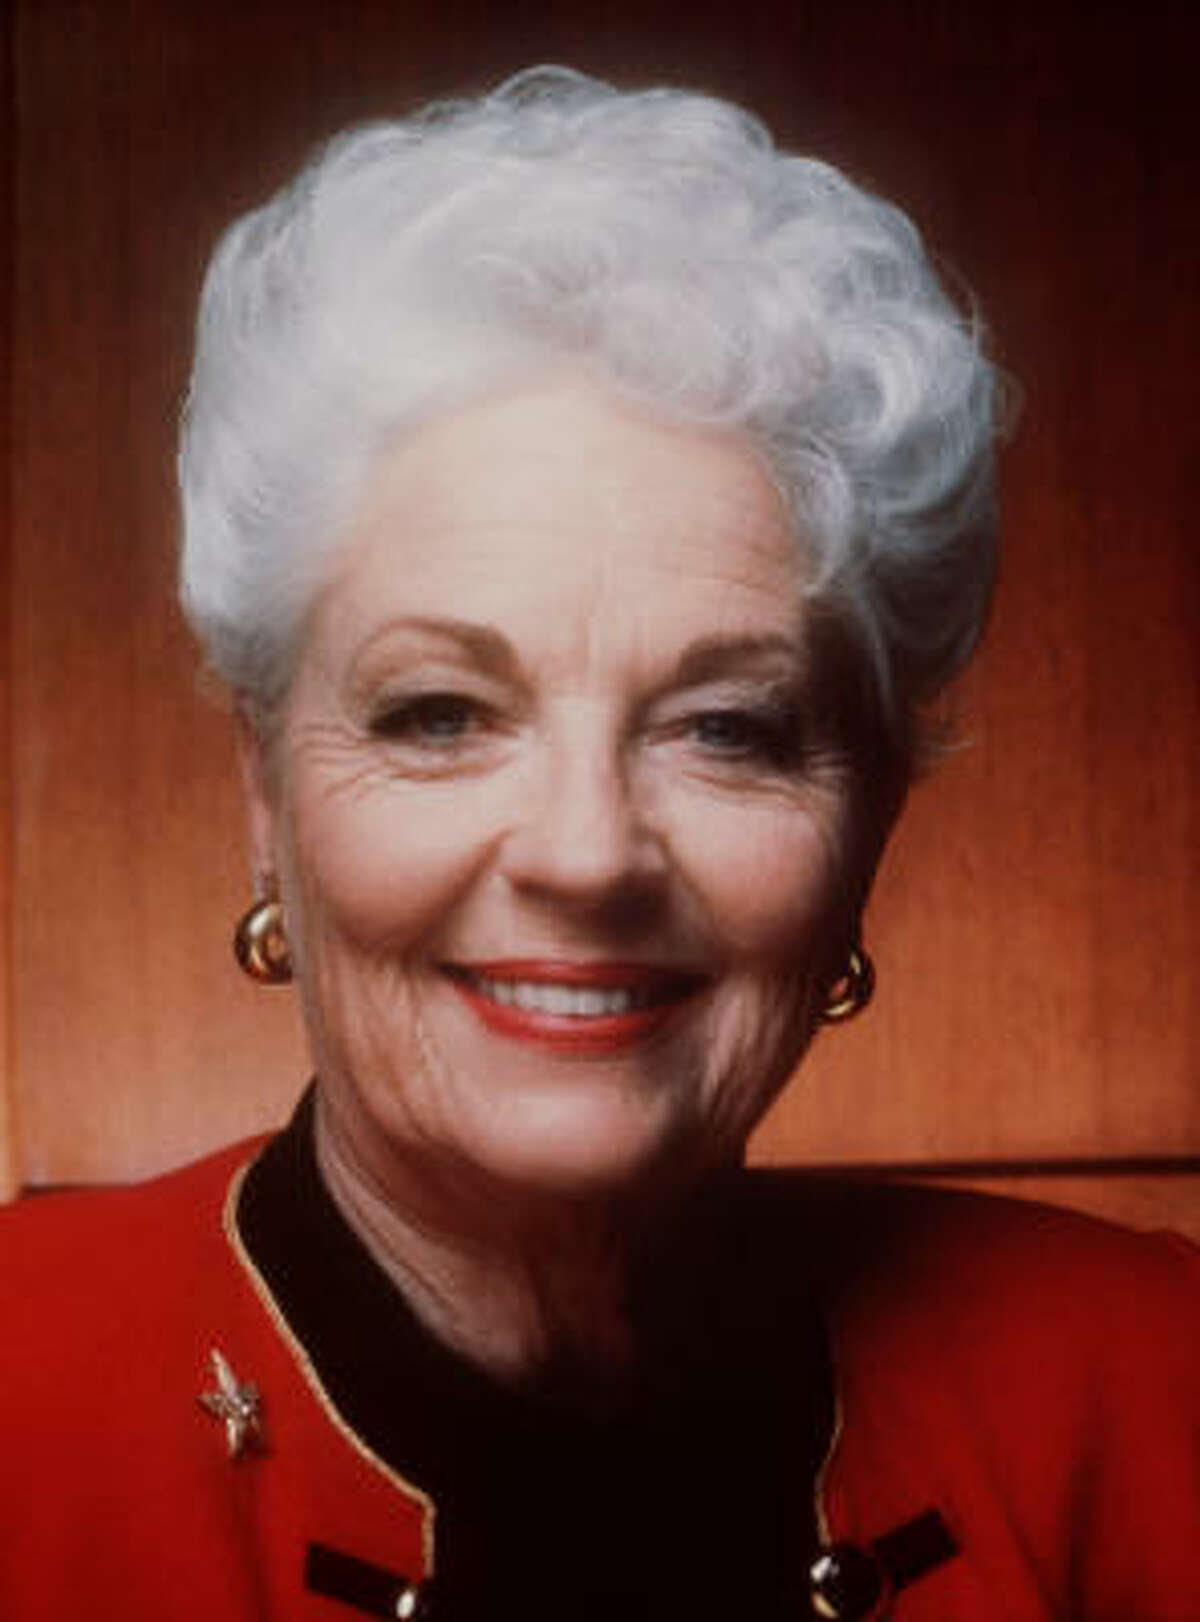 Ann Richards, former Texas governor, has died. She was 73.